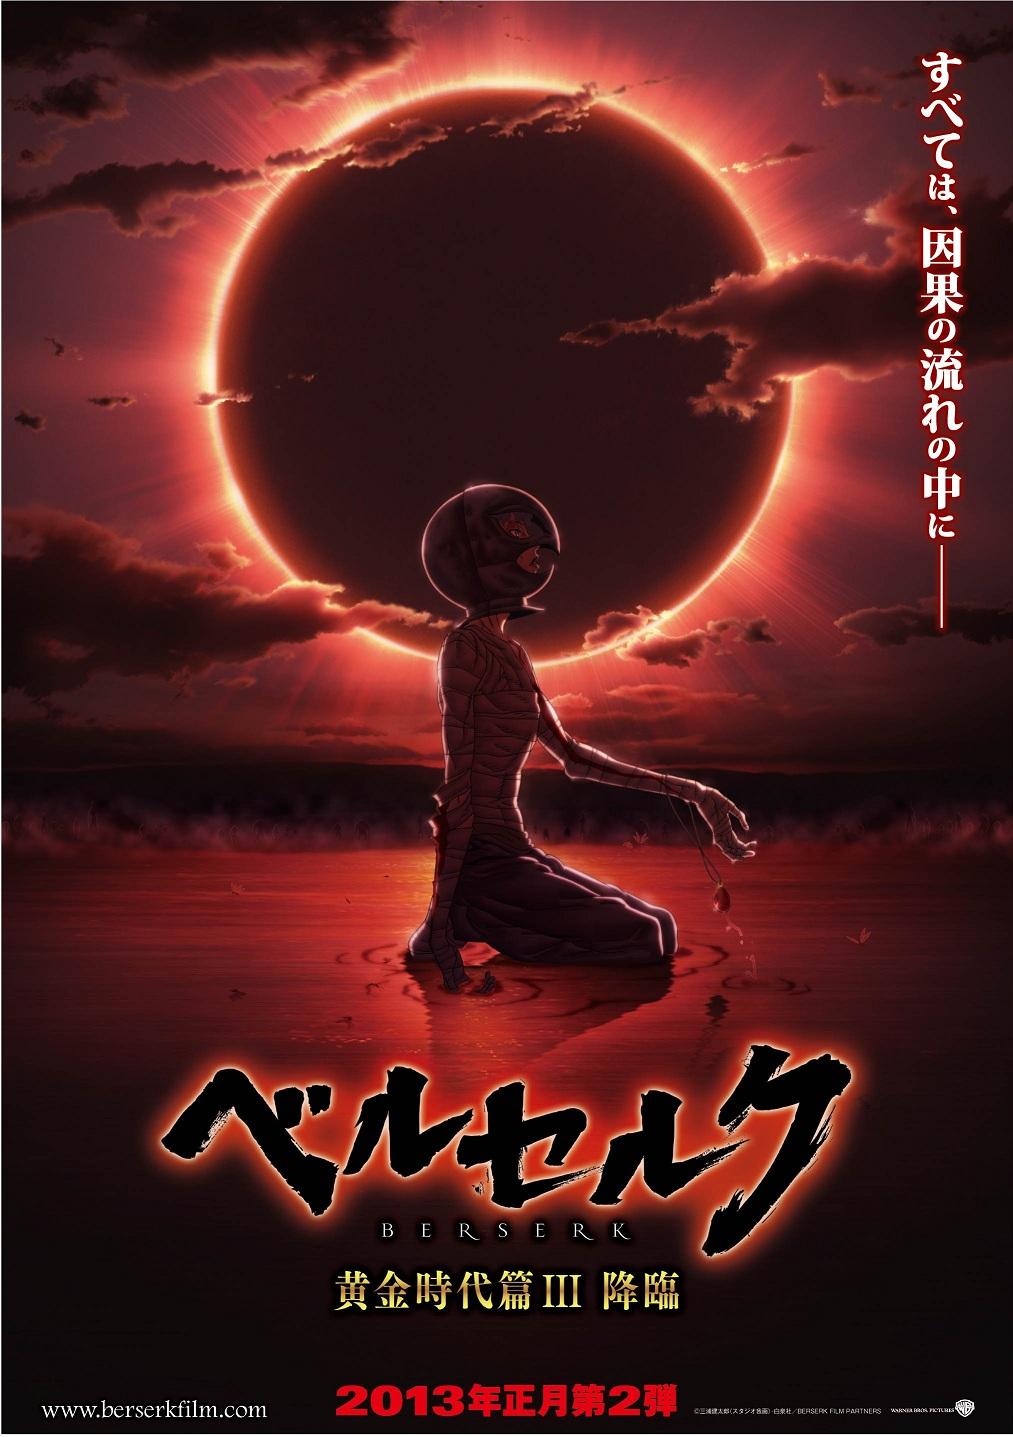 Berserk-movie-3-poster-1